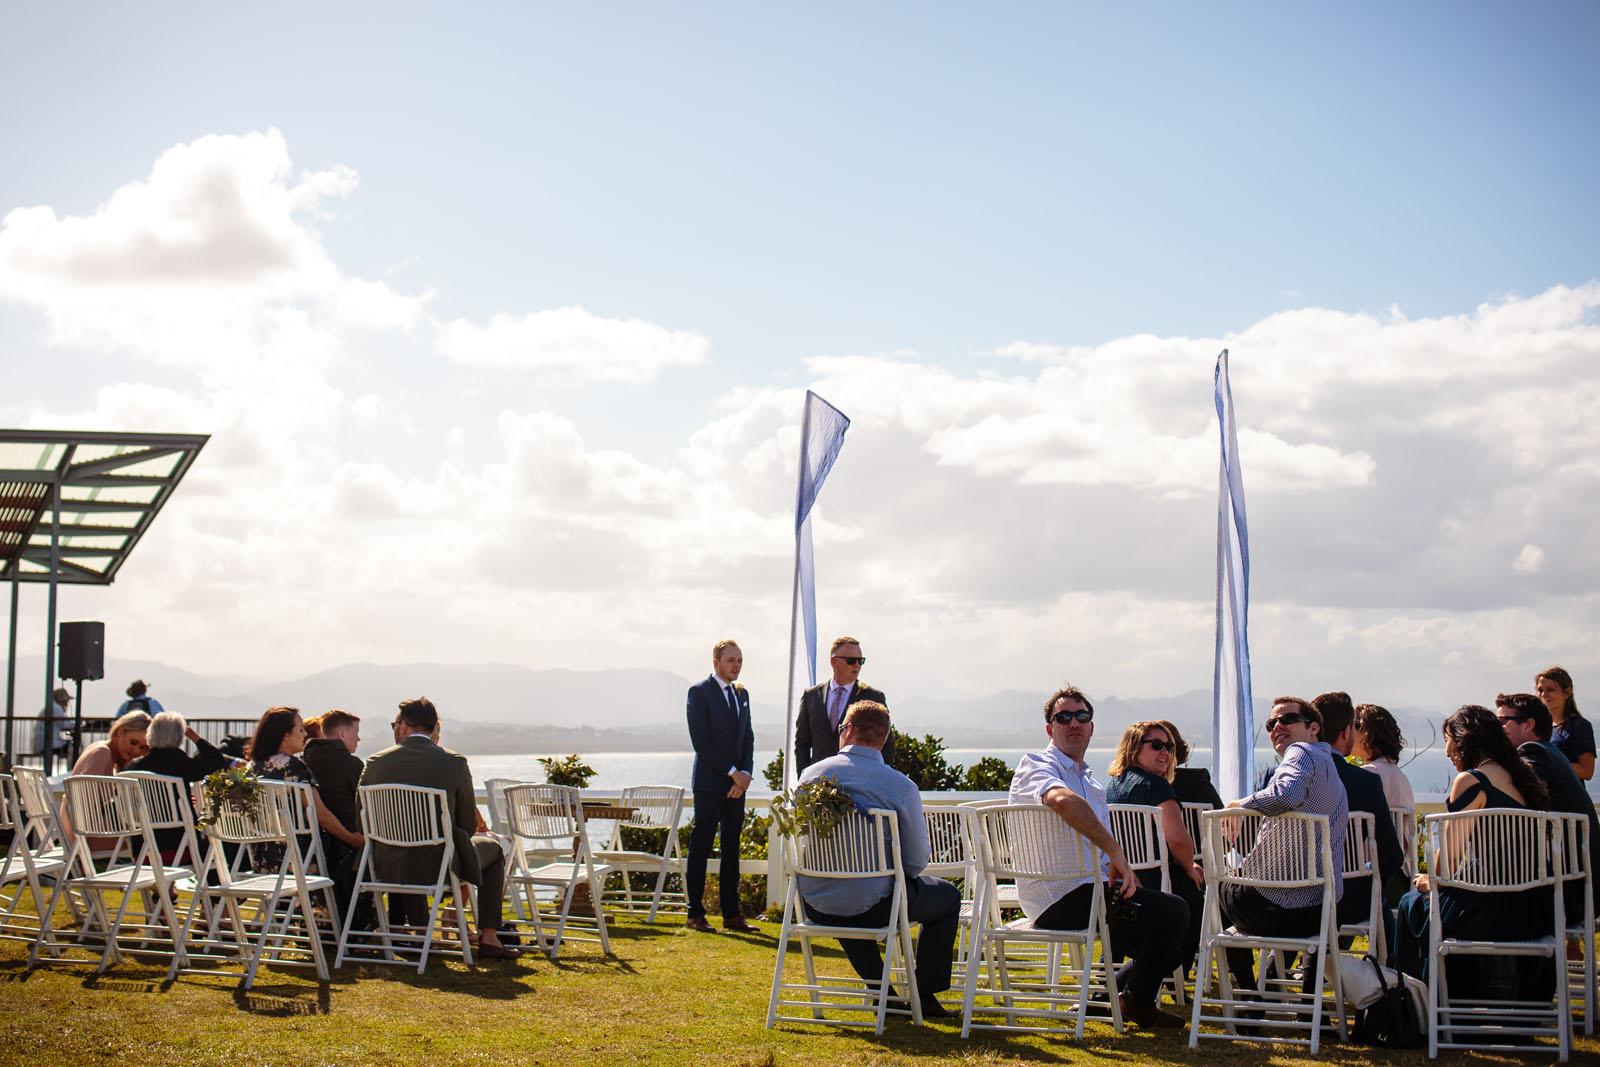 byron_bay_wedding_photogrpaher_597